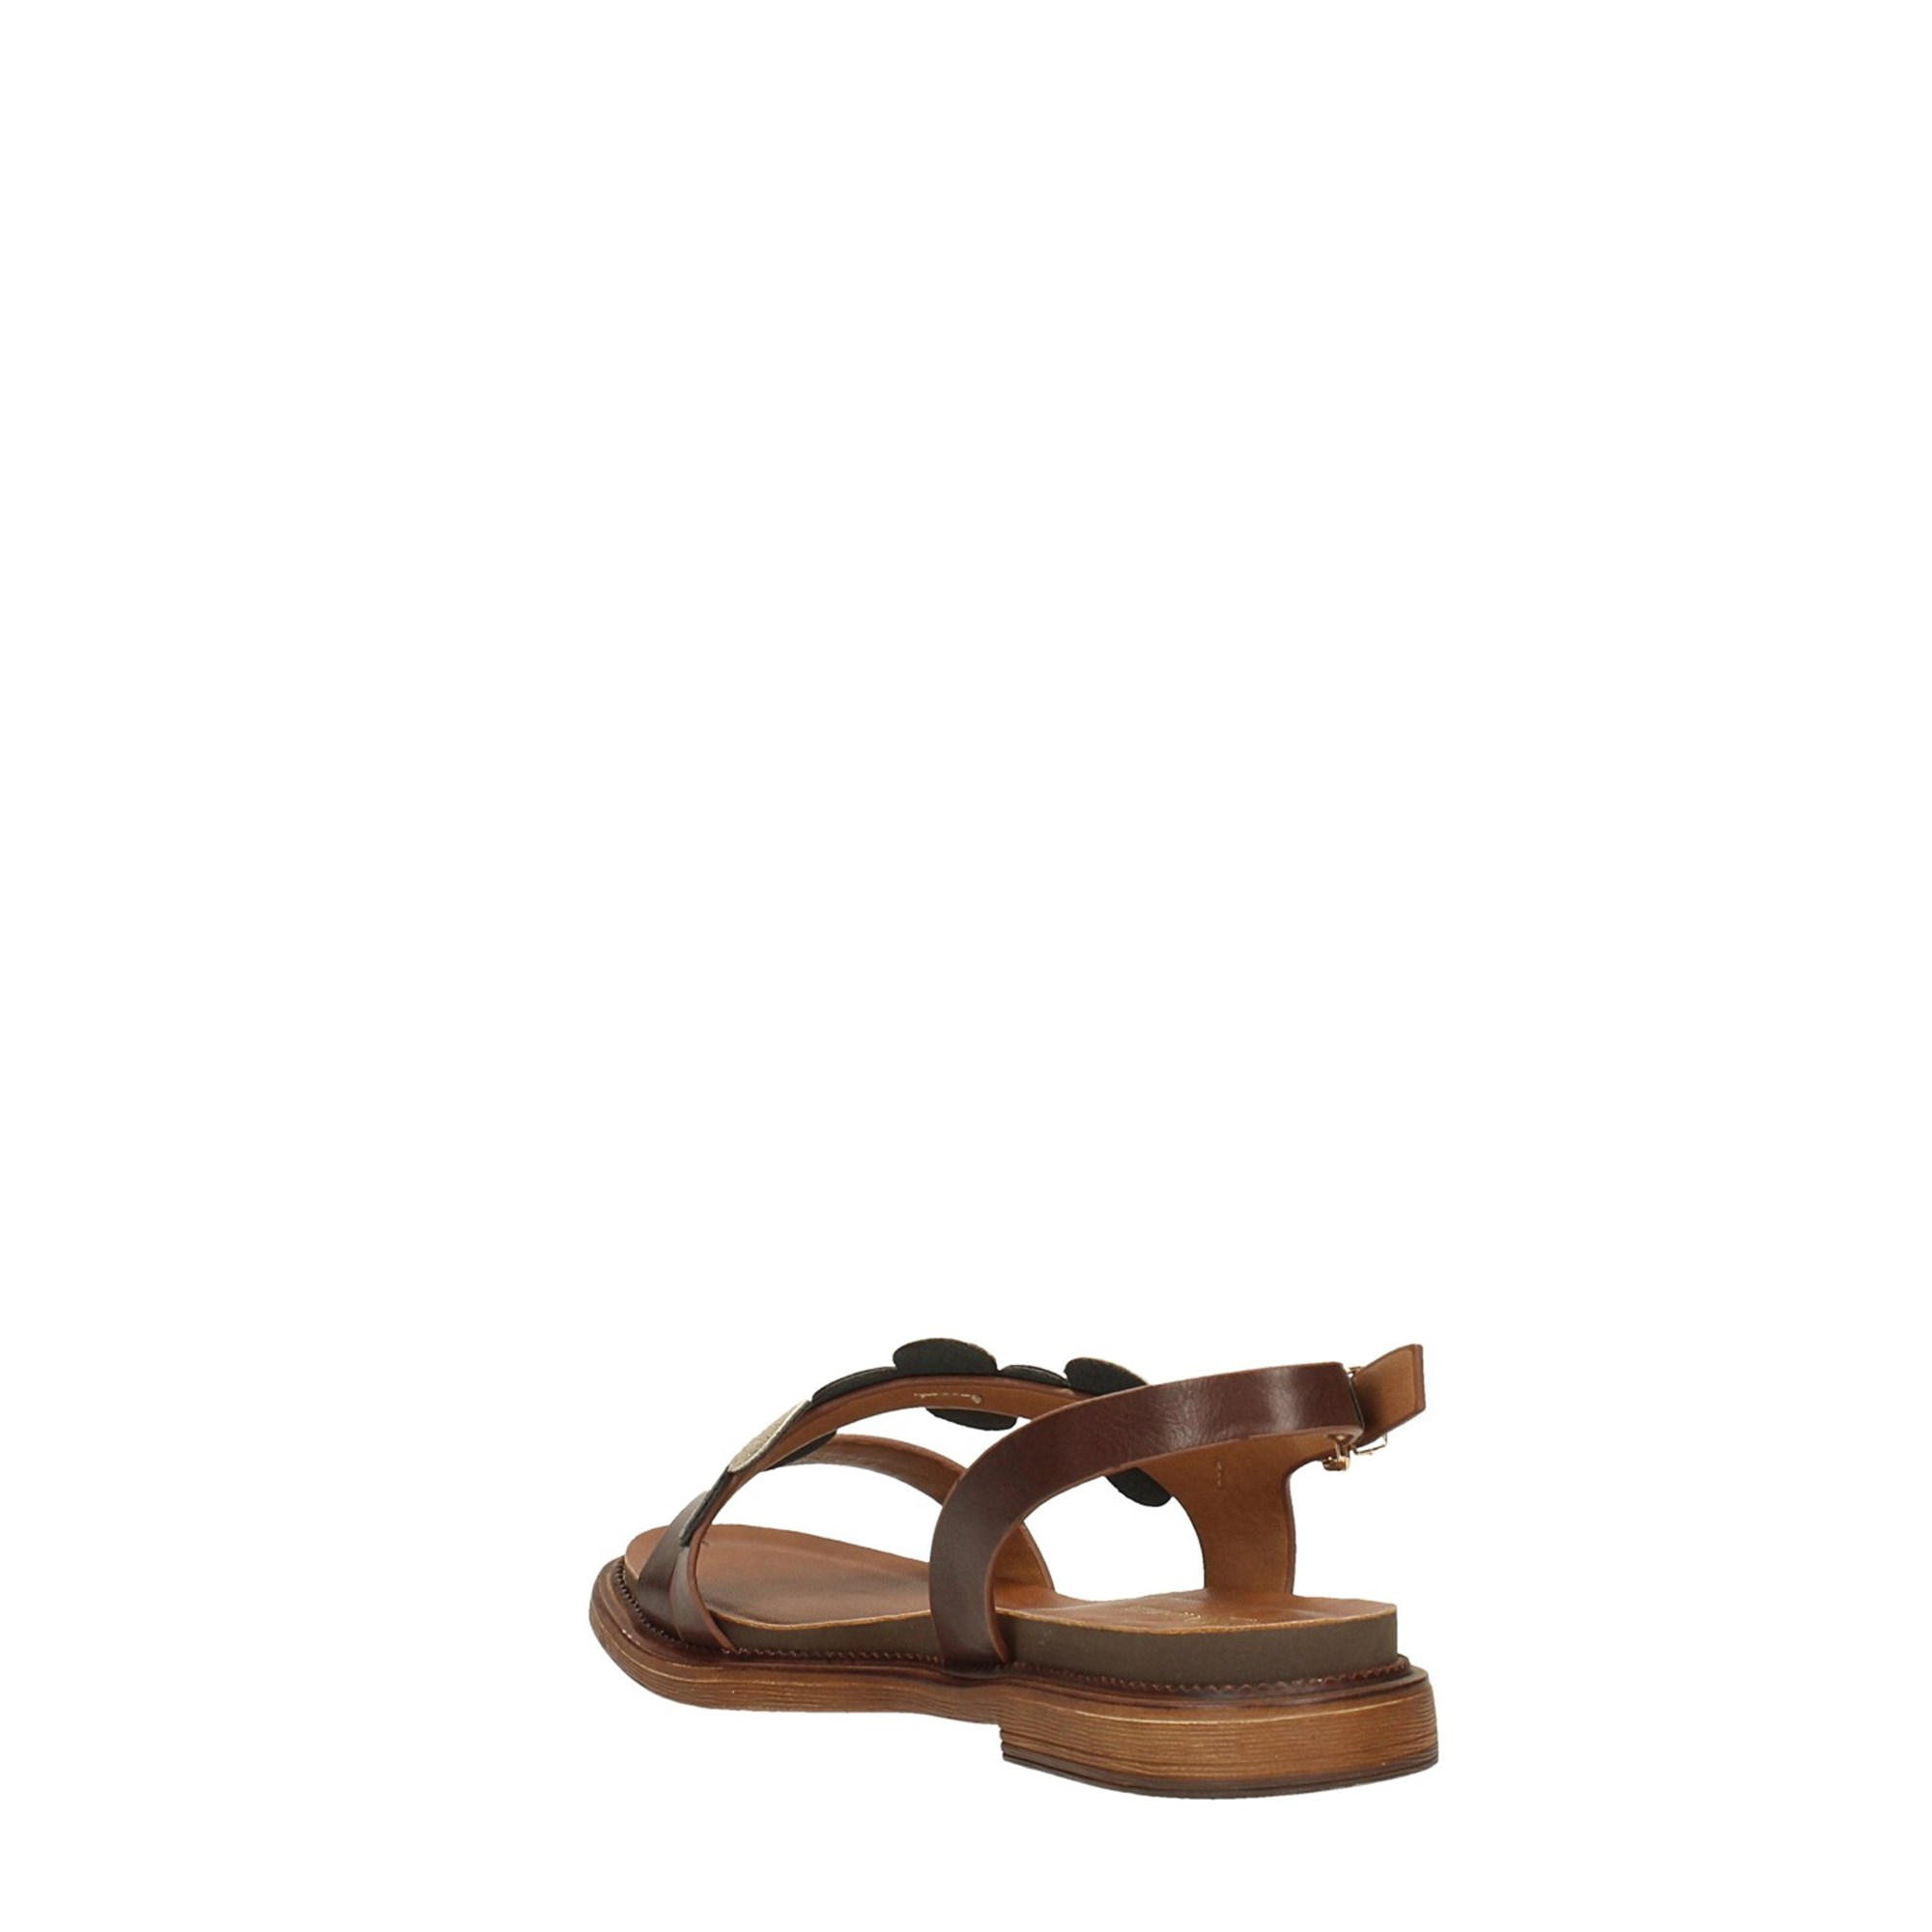 Tata Italia Shoes Woman Sandali JB19S49-8/E20